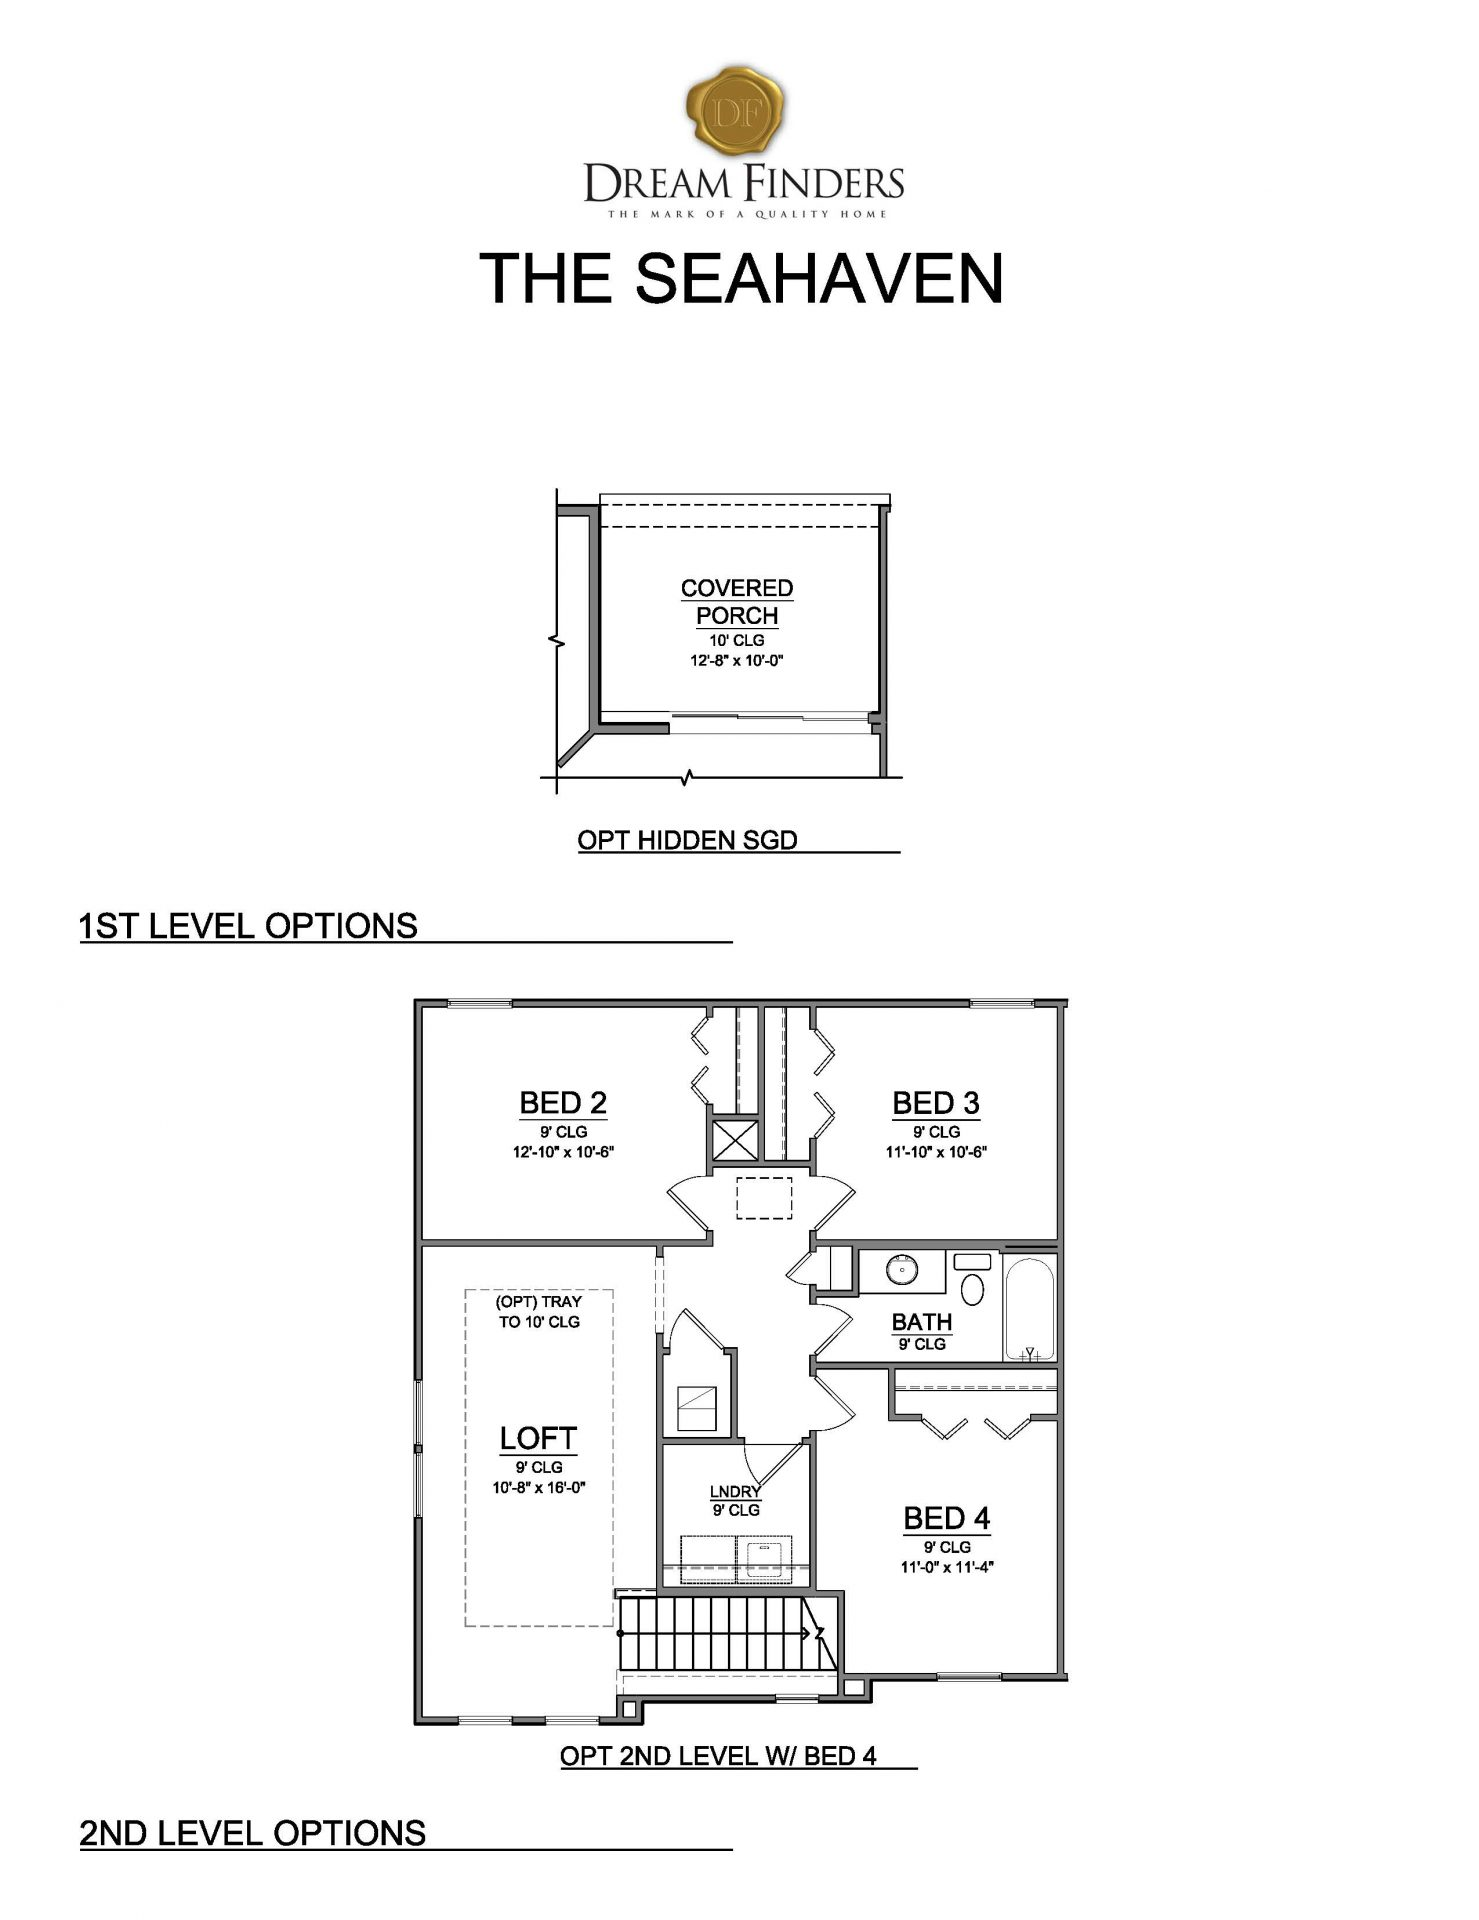 The Seahaven Brochure Revised 08 02 21 Page 3